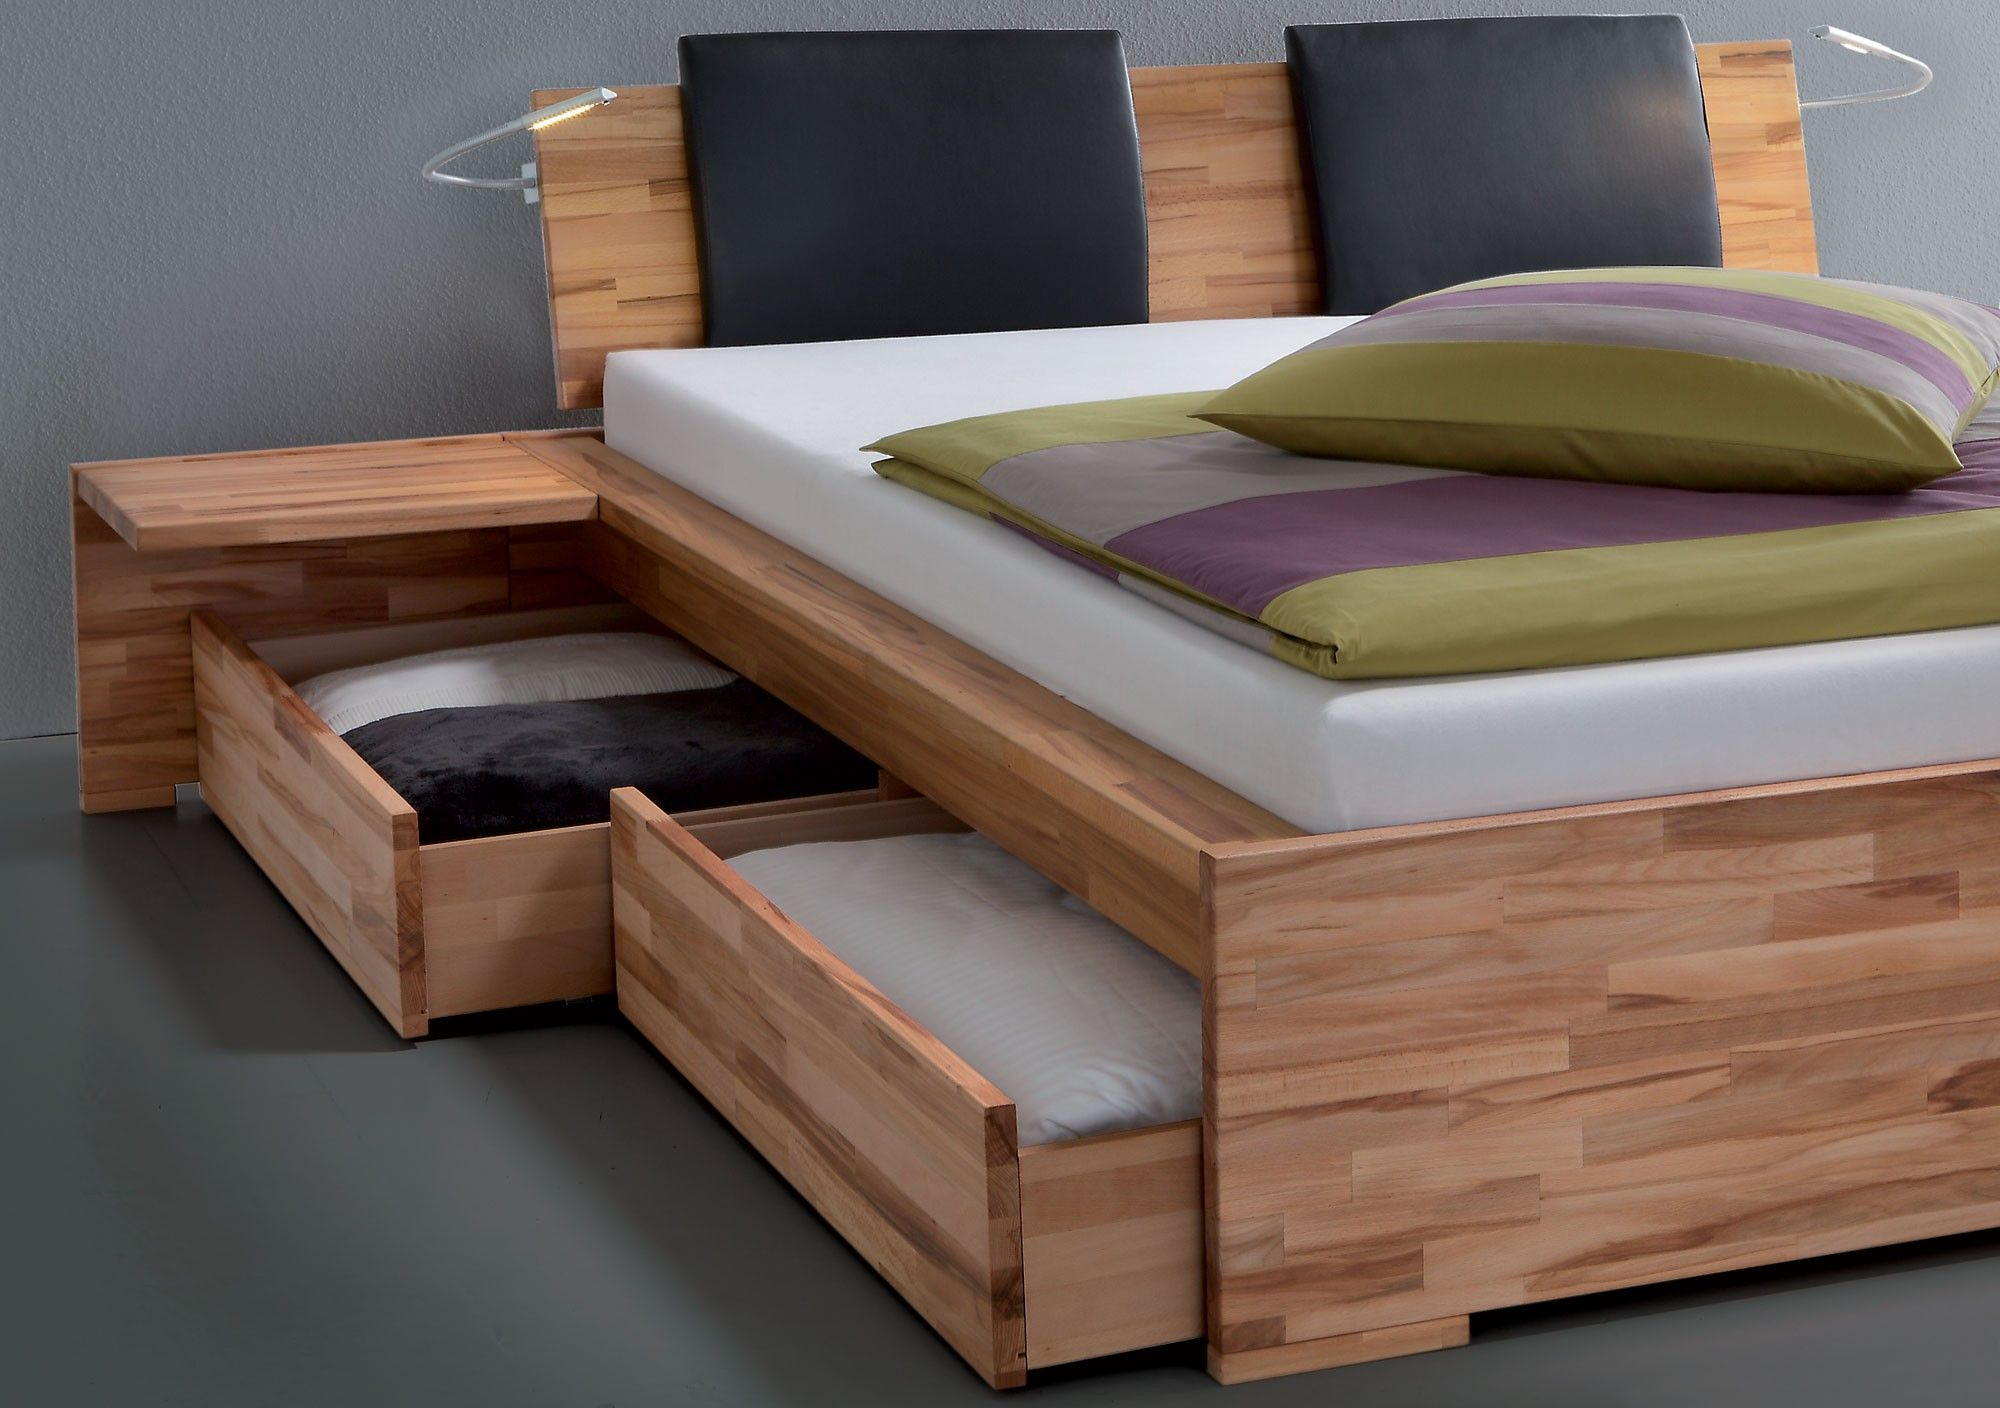 Likable storage beds nyc inspiration pinteres for Double bed with storage and mattress